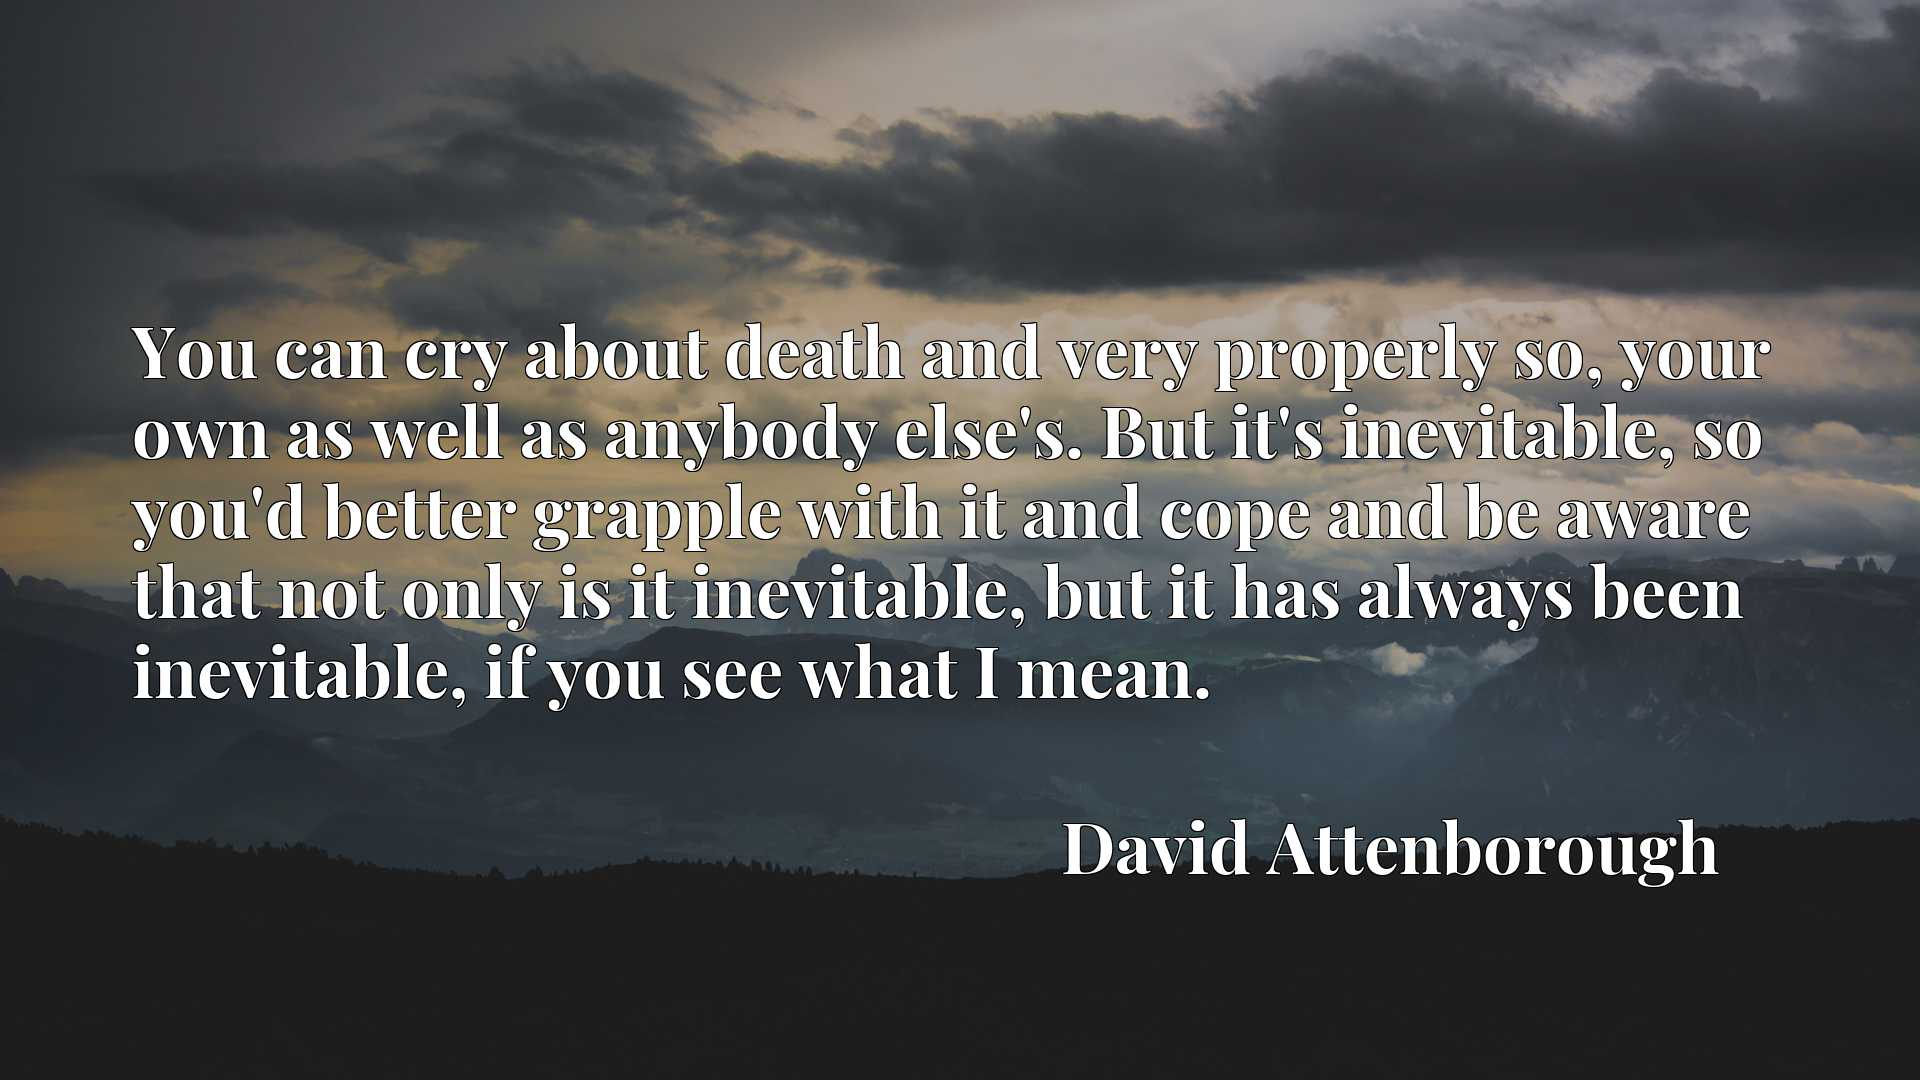 You can cry about death and very properly so, your own as well as anybody else's. But it's inevitable, so you'd better grapple with it and cope and be aware that not only is it inevitable, but it has always been inevitable, if you see what I mean.